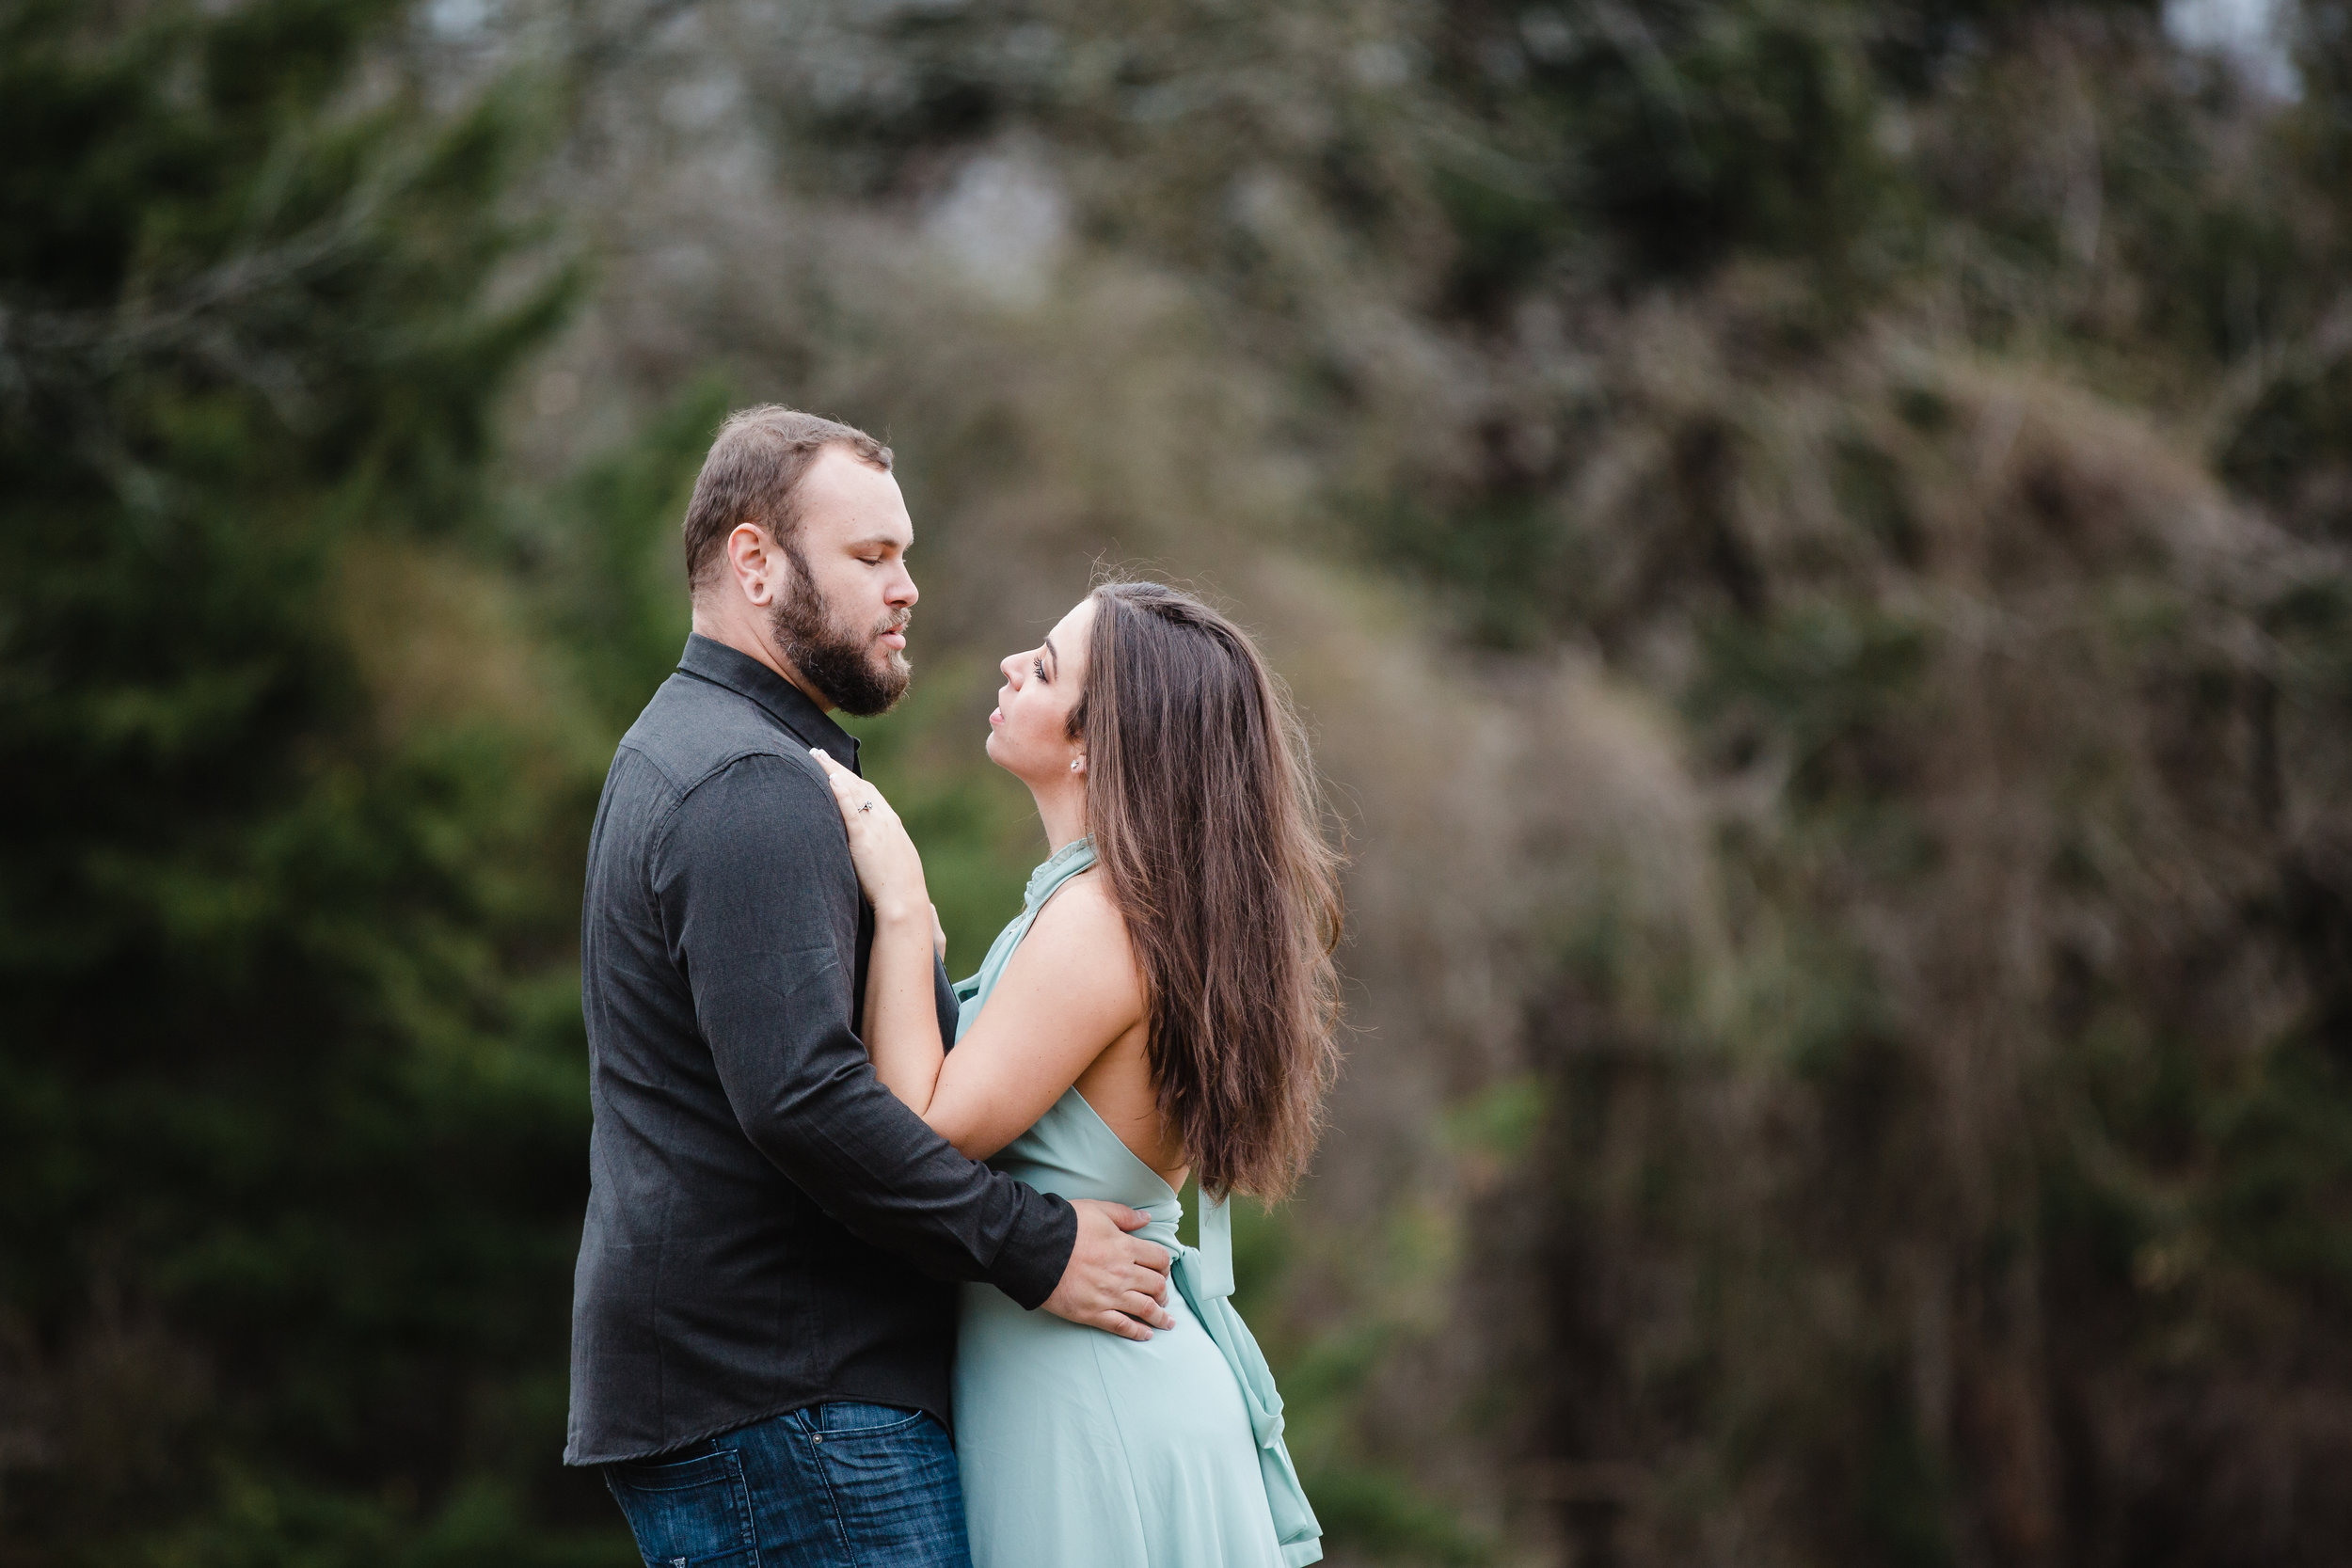 dallas wedding photography, texas wedding photographer, wedding inspiration, engagement photos, best engagement photos, love, tie the knot and capture all your special memories, chelsea raleigh photography, dallas photography, dallas photographer, engagement photography, engagement photographer